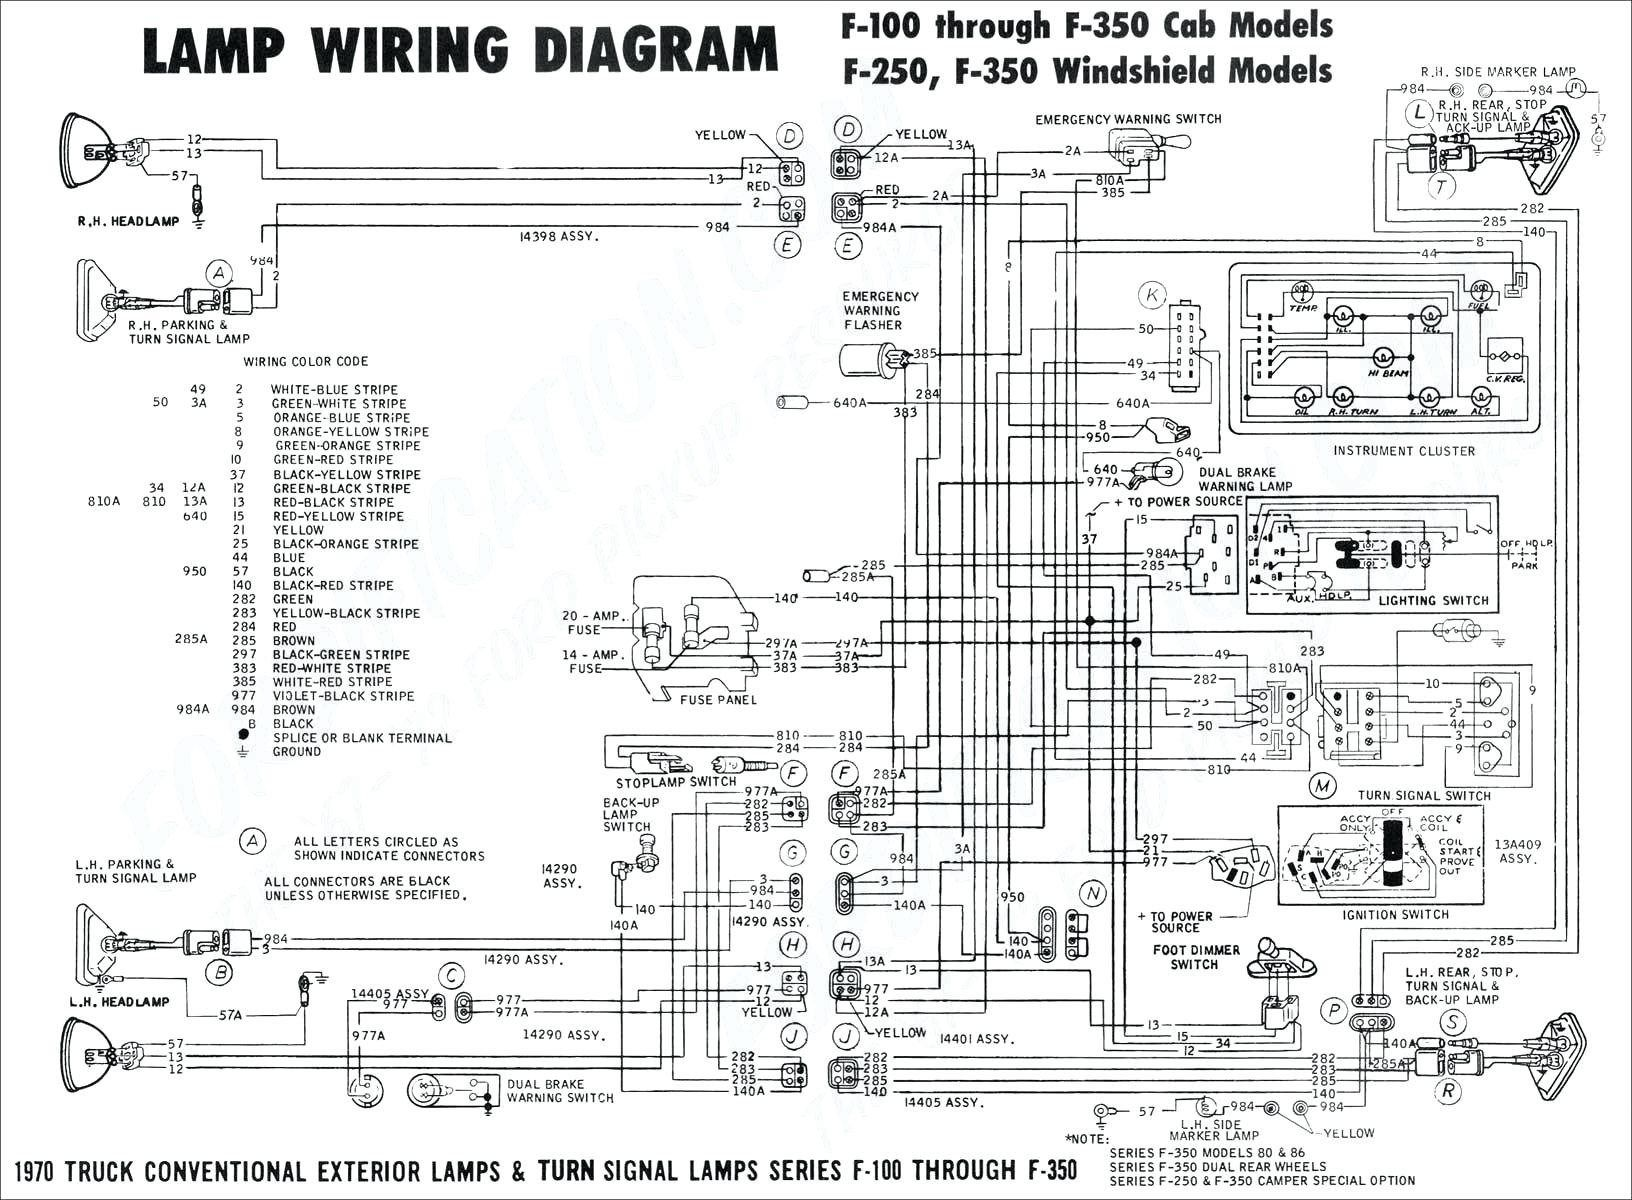 21 Ford Harness Wiring Diagram - bookingritzcarlton.info | Trailer wiring  diagram, Electrical diagram, Electrical wiring diagram | Ford F 350 Alternator Wiring Diagram |  | Pinterest